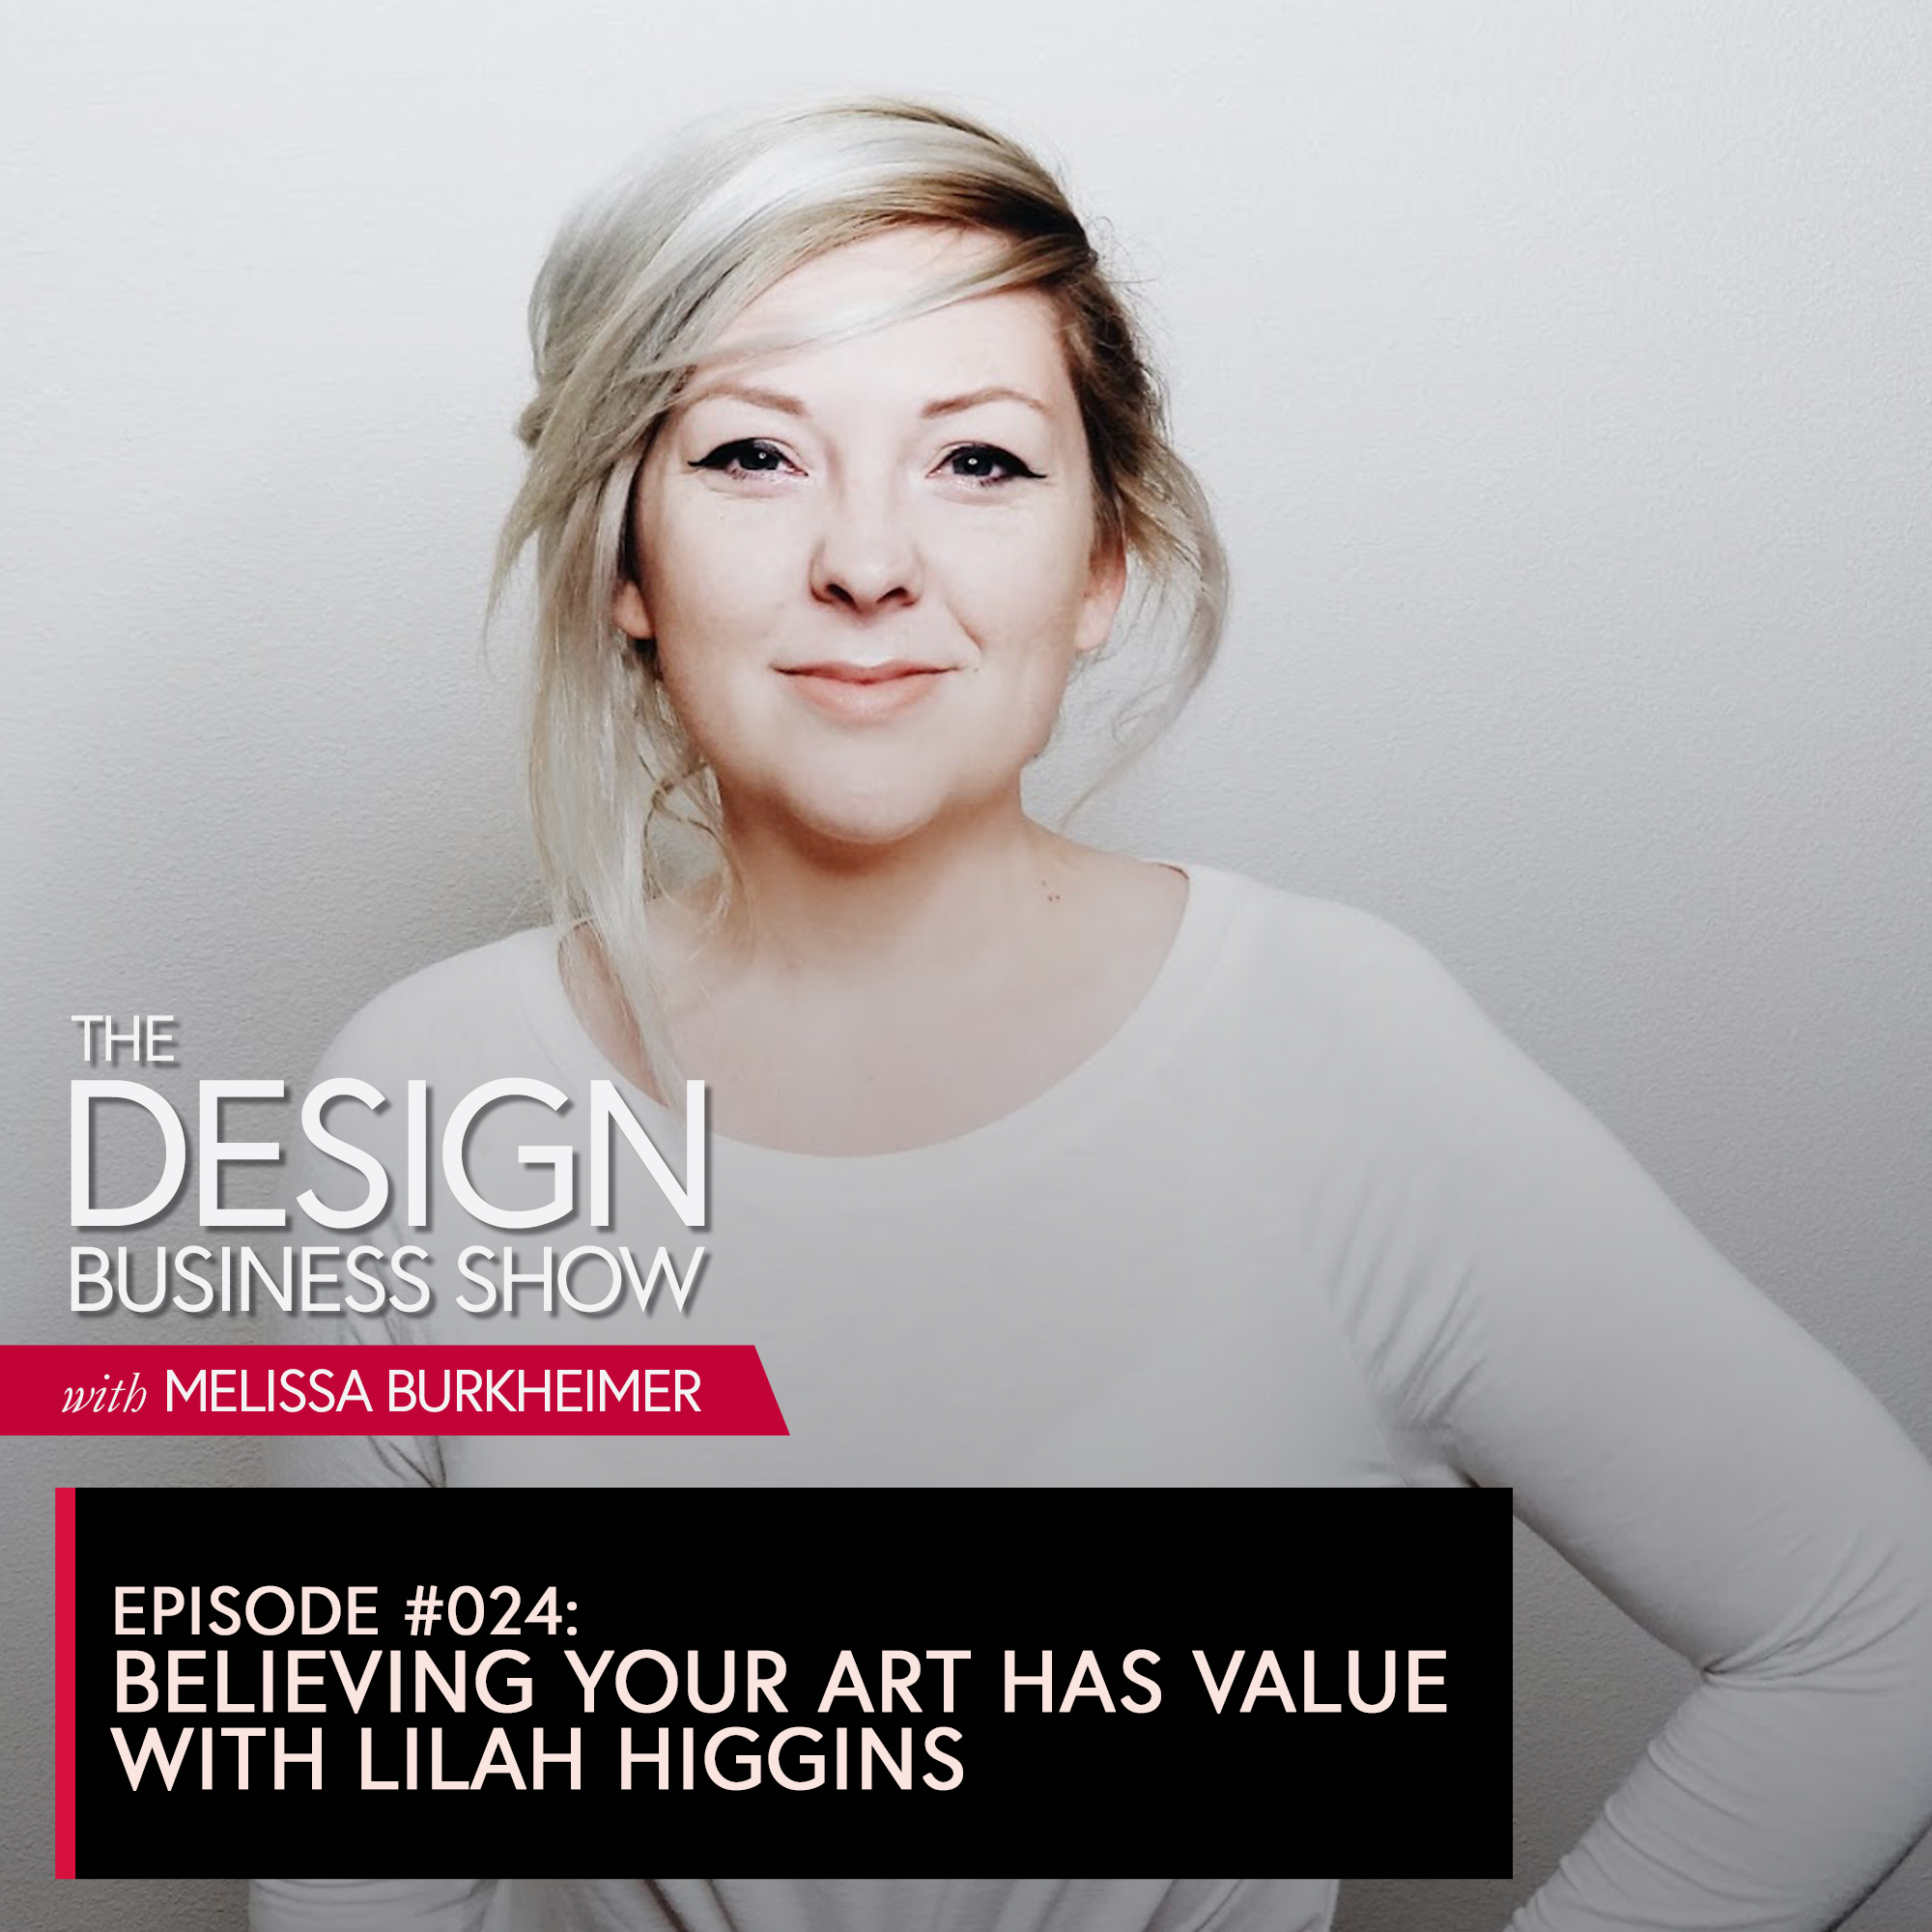 Join me for episode 23 of The Design Business Show with Lilah Higgins, creative genius over at The Higgins Creative about believing your art has value, tapping into your own strengths in your offers, and why strategy matters.